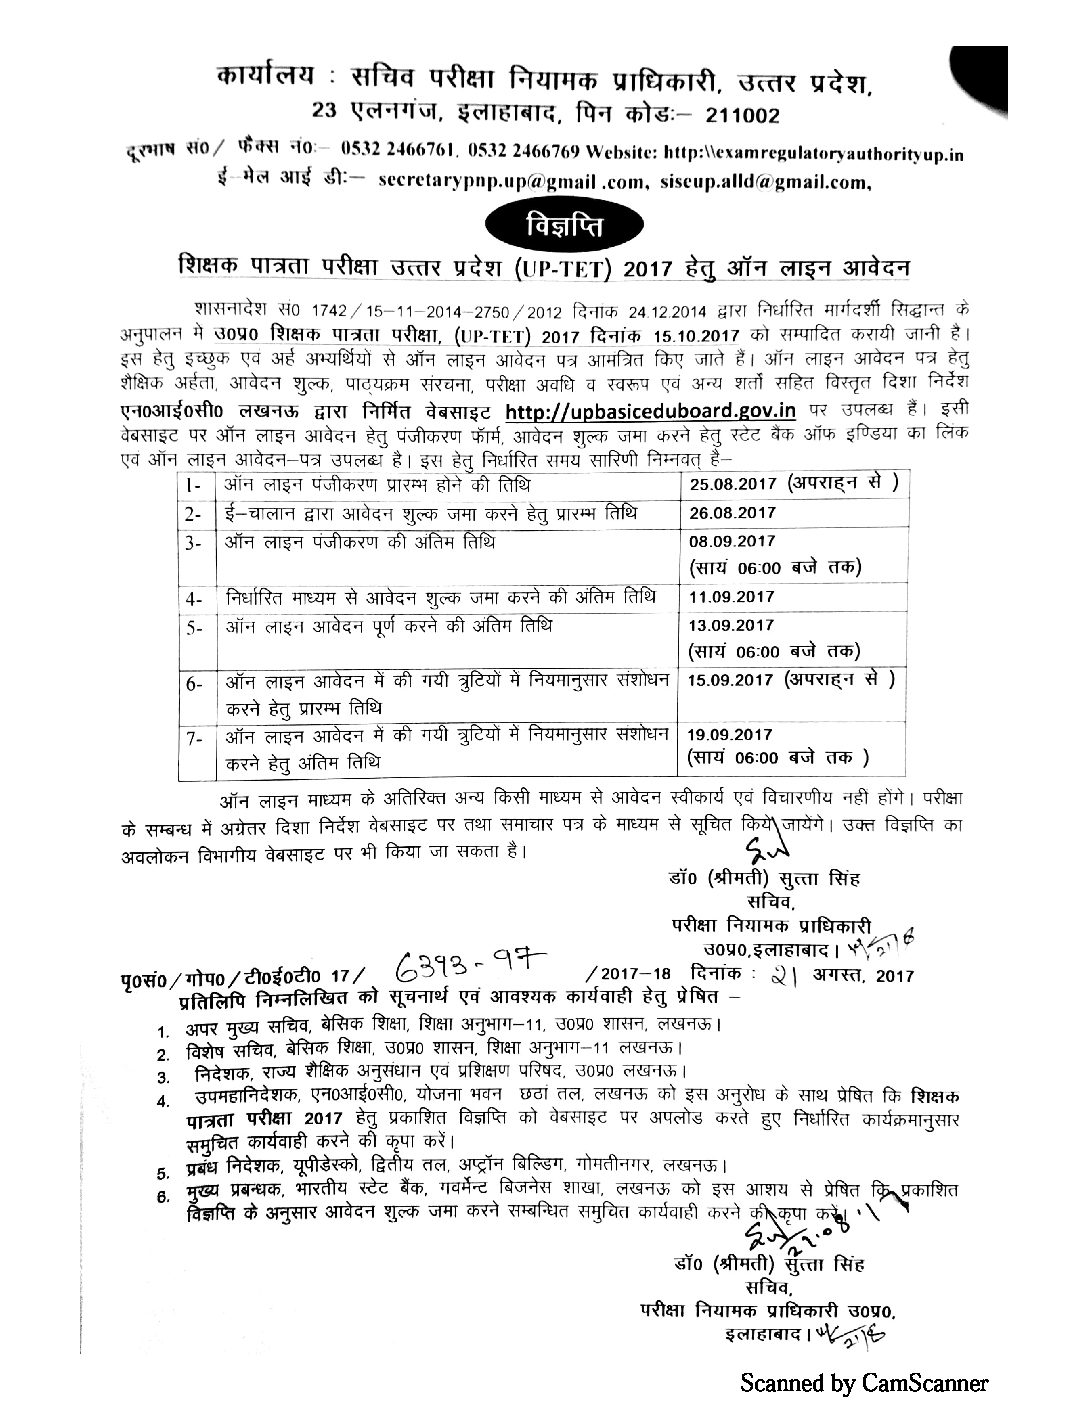 UP TET 2017 Requirement Notification Advertisement pdf download